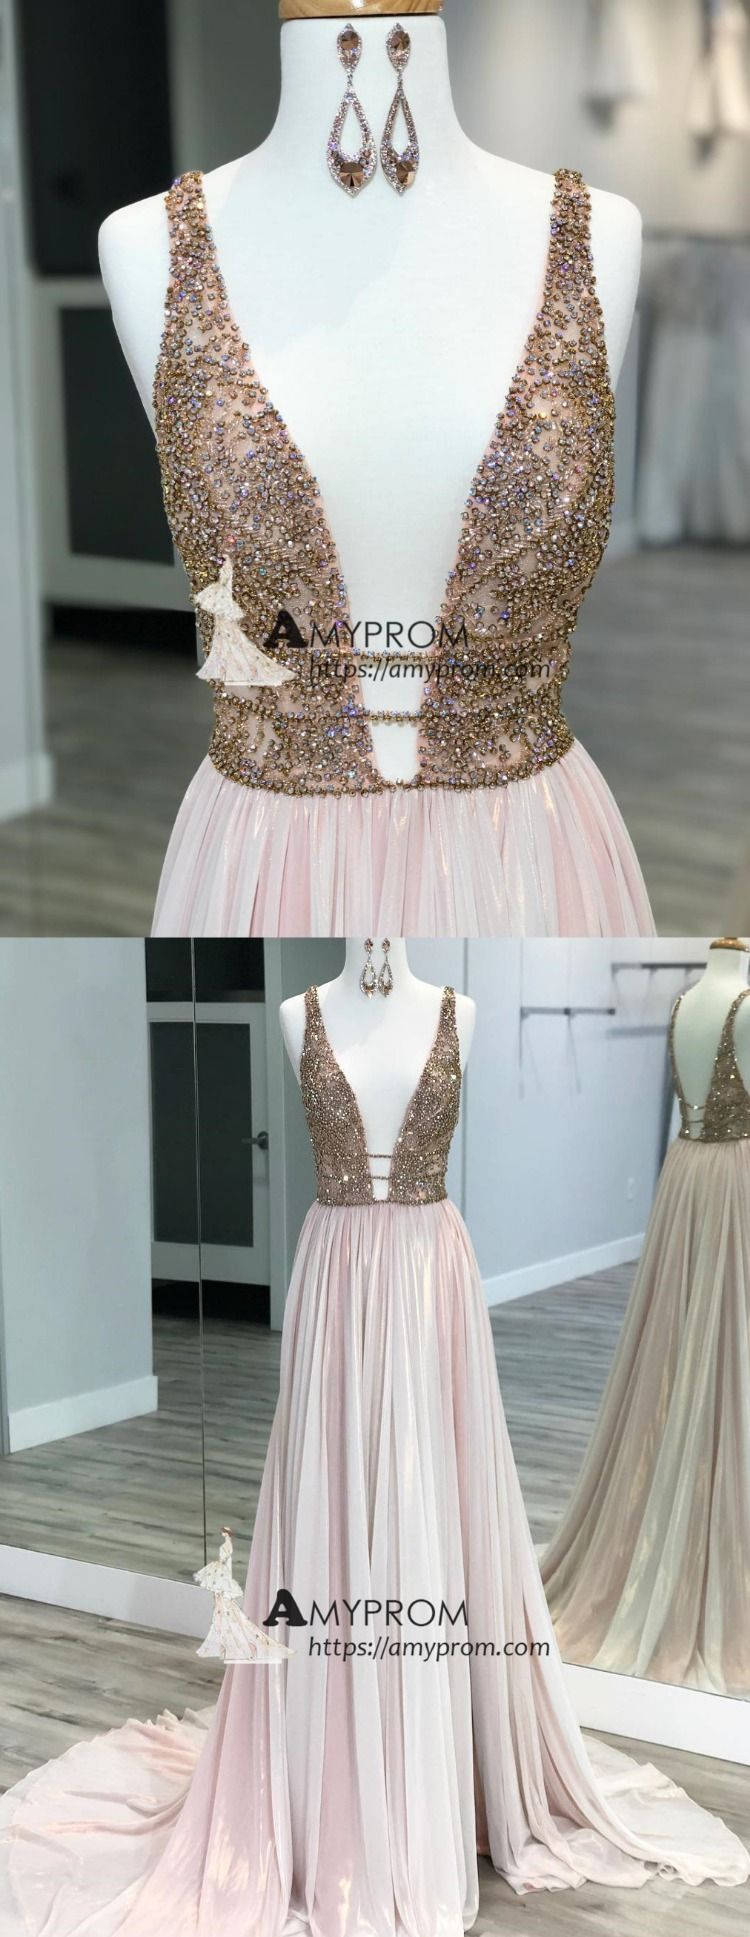 3a427dce2bc Chic Pink Sparkly Prom Dress Deep V neck Rhinestone Evening Dress With Beaded  Elegant Formal Gowns